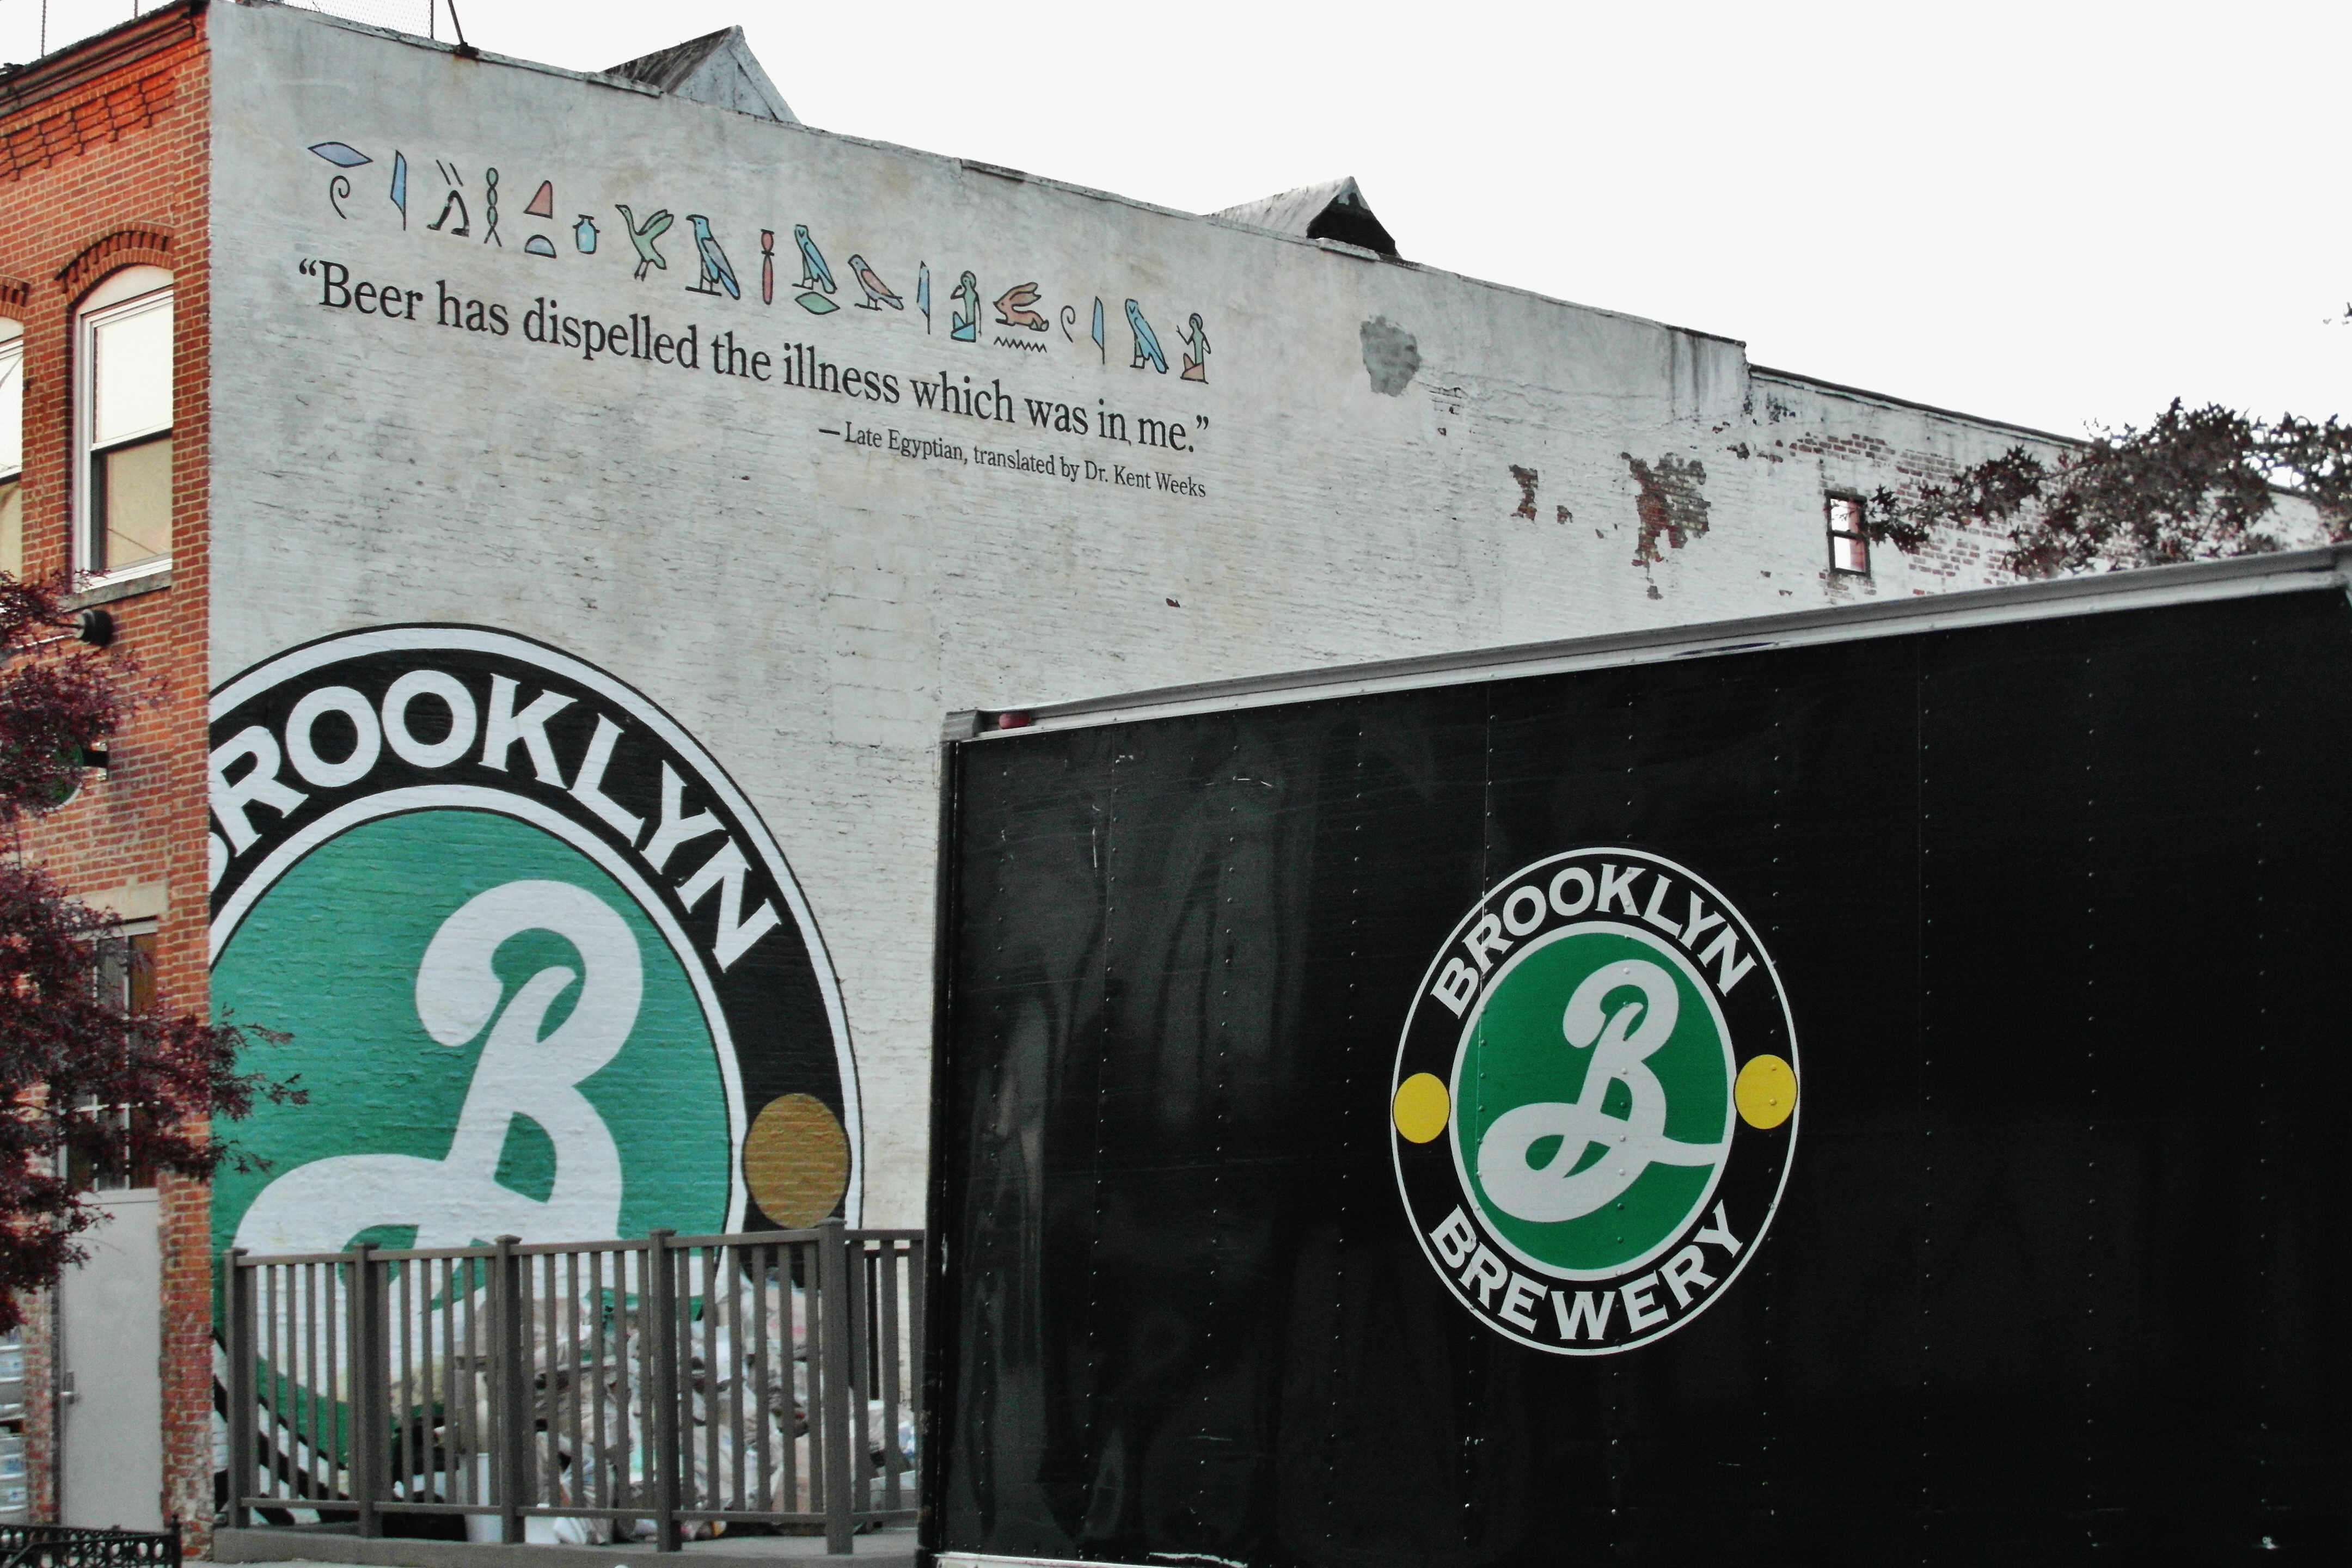 Brooklyn Brewery. Brooklyn, NYC, US. Photo: author